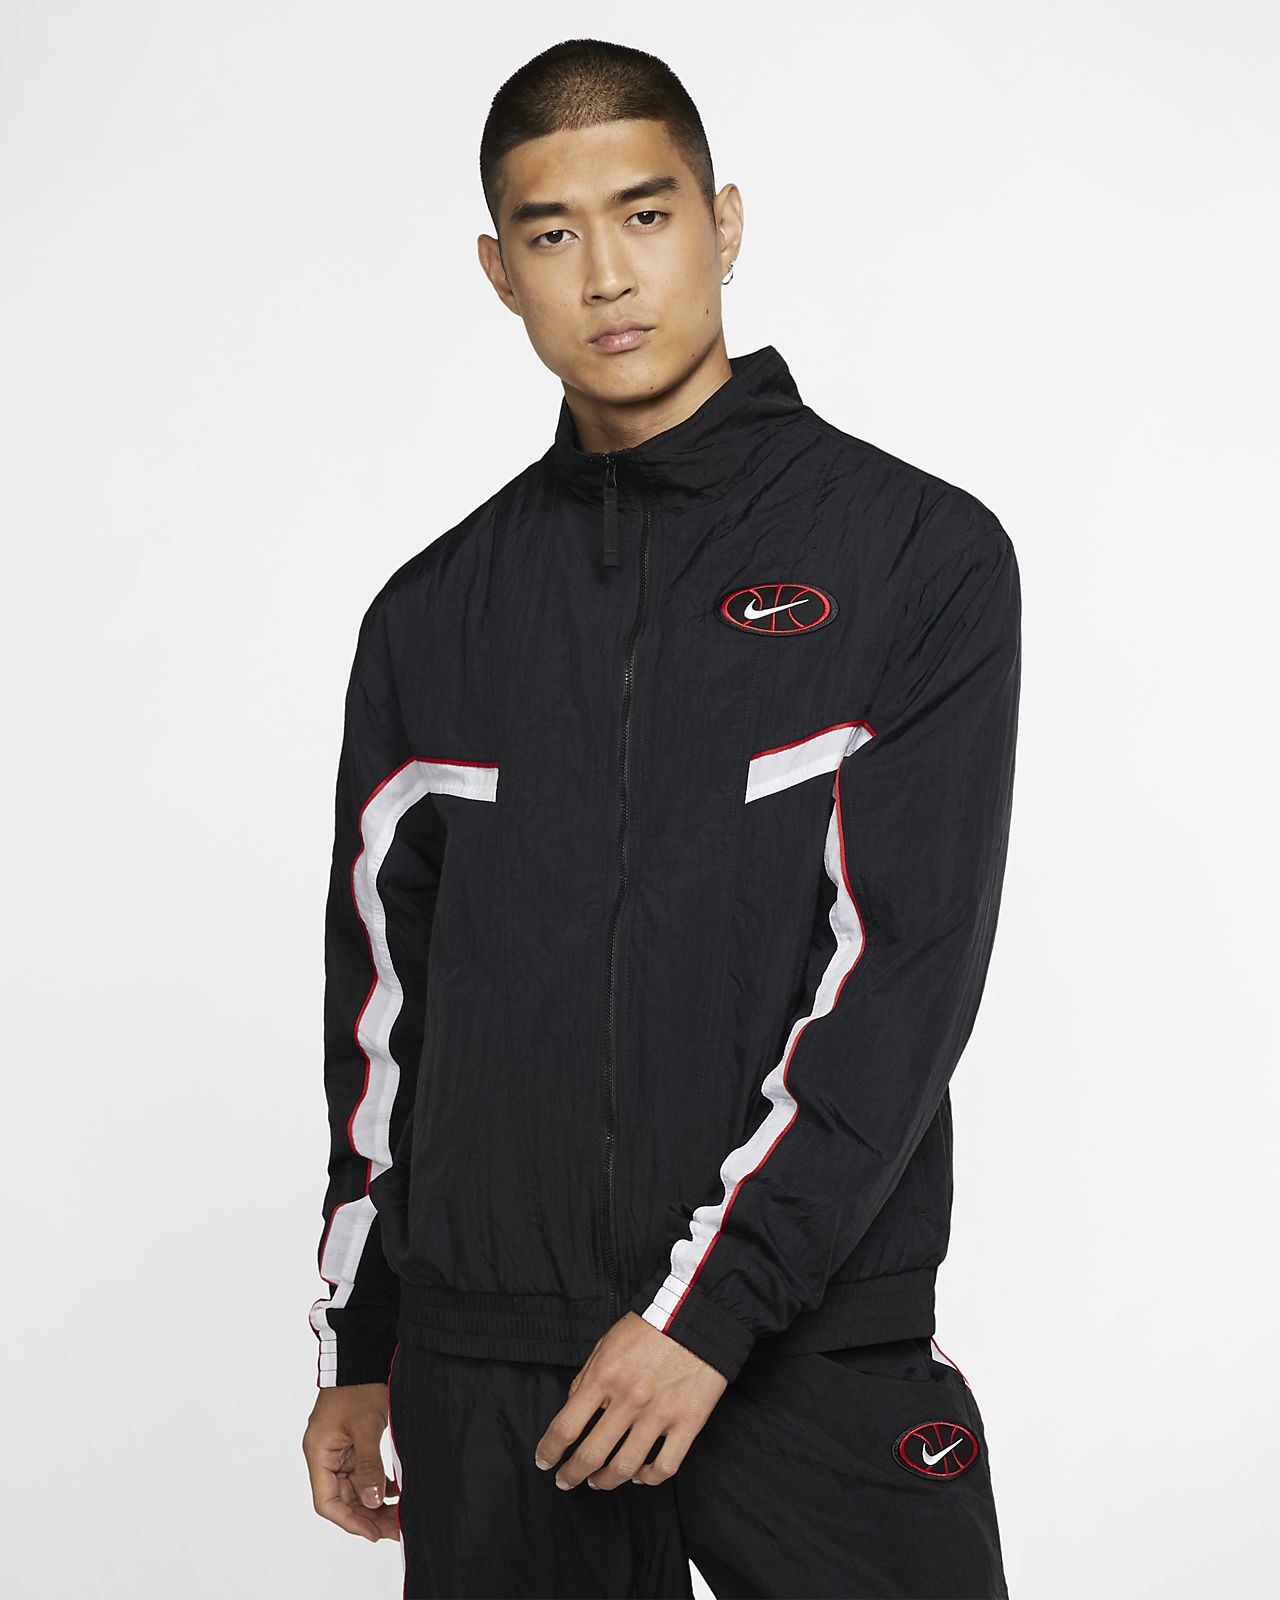 Nike Throwback Men's Woven Basketball Jacket